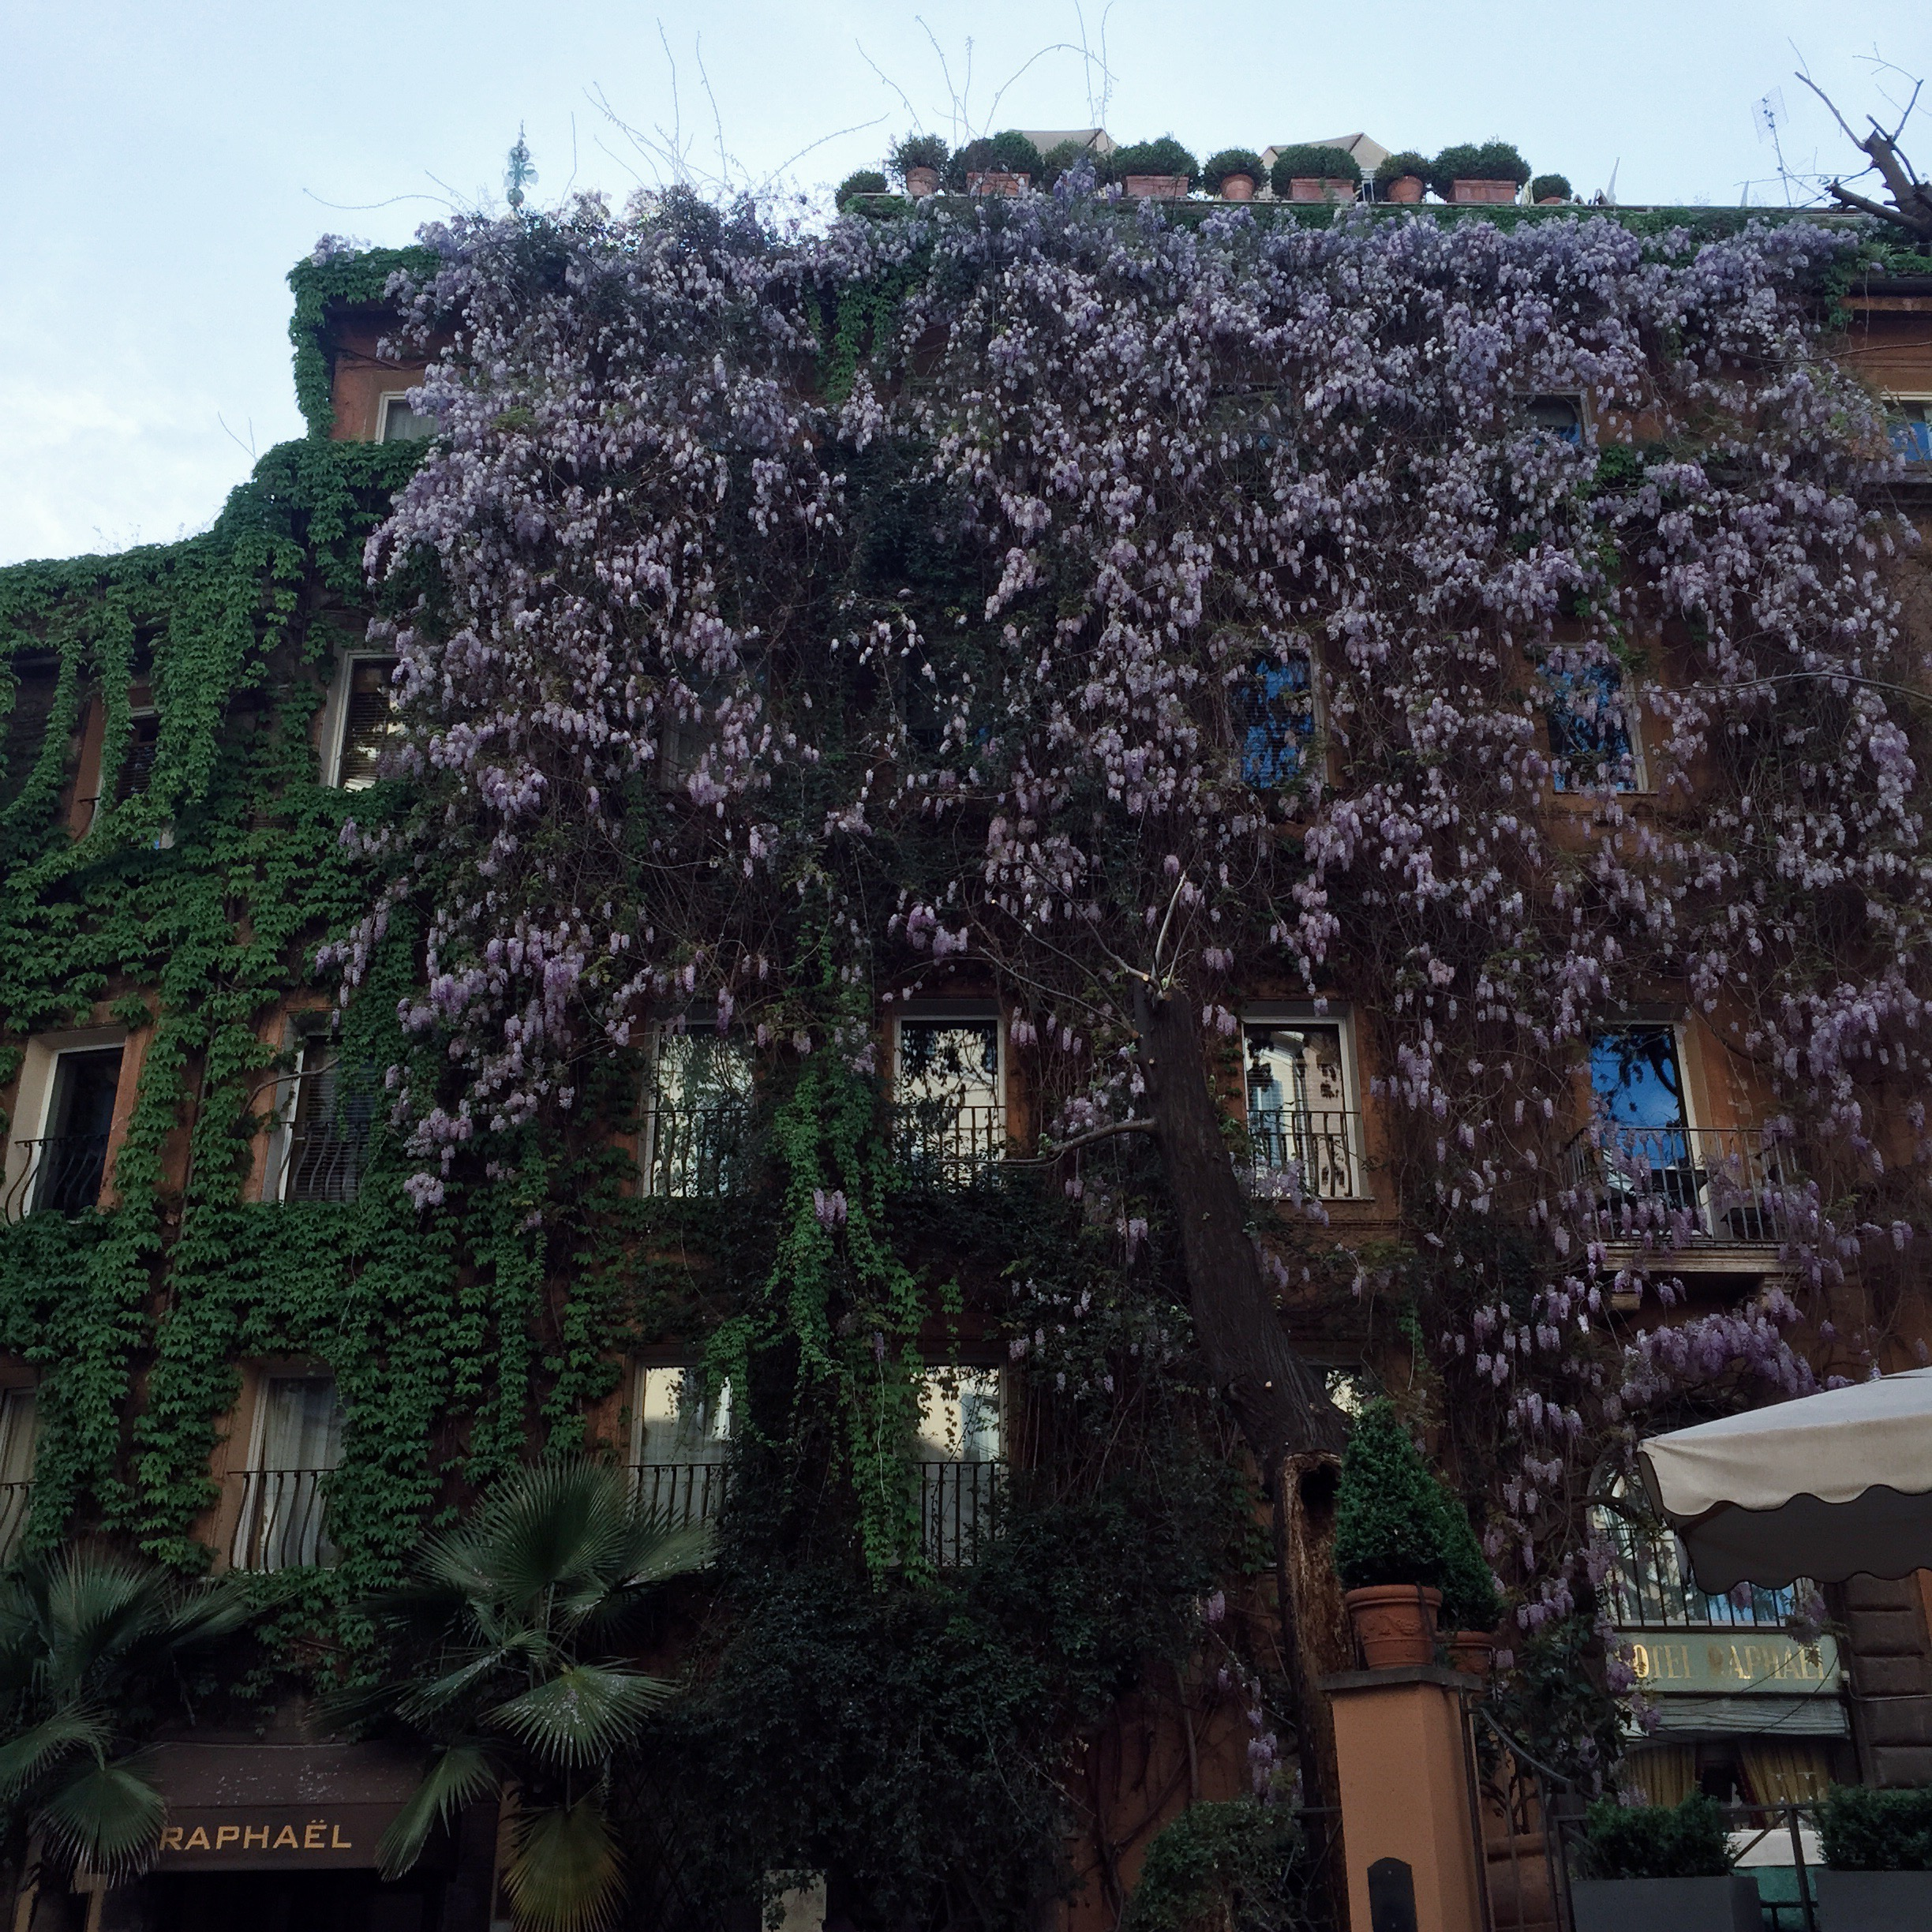 A hotel covered with wisteria